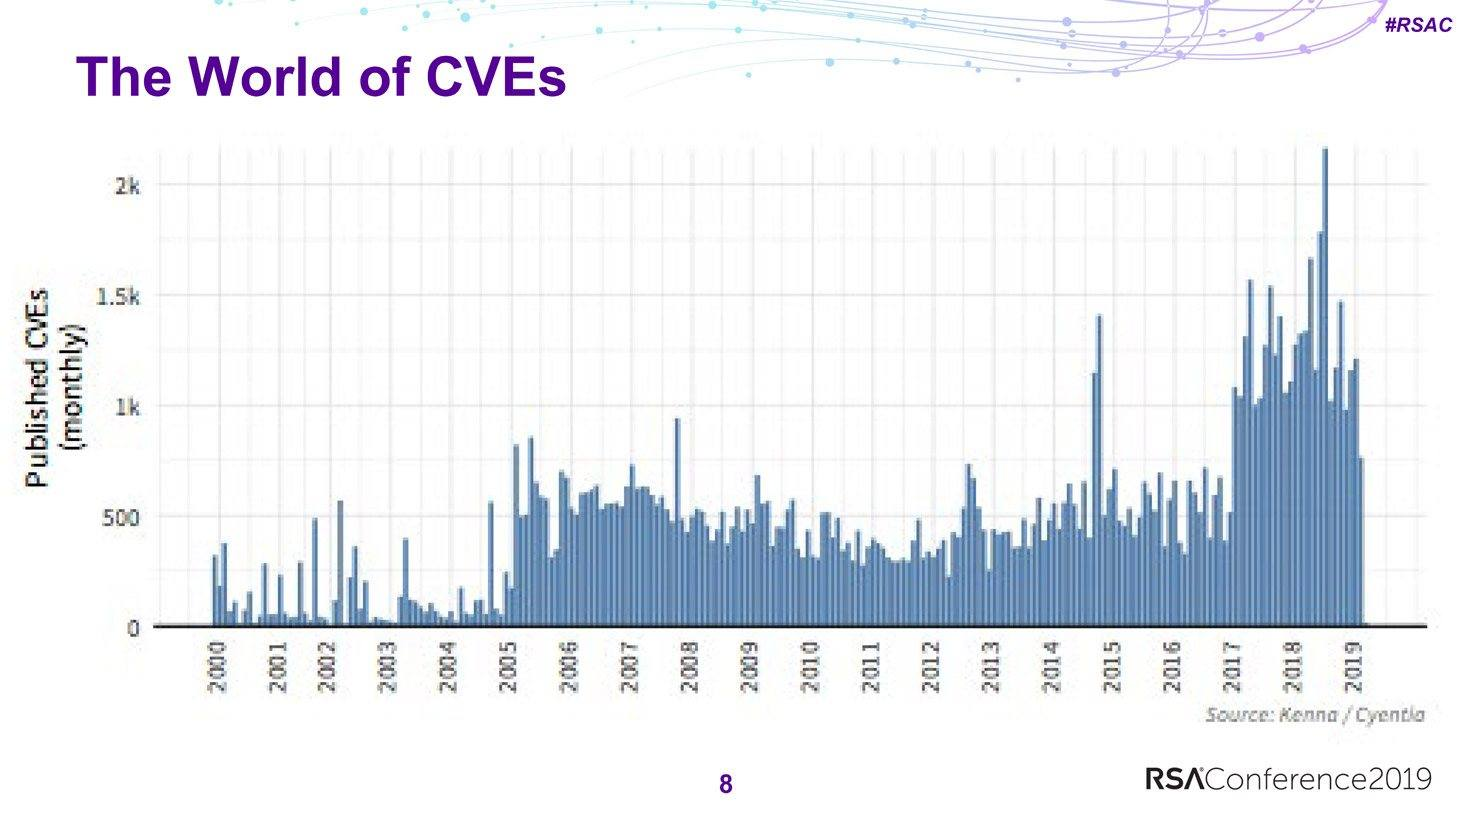 CVE publication rate increased dramatically in 2017, exceeding 1,000 per month